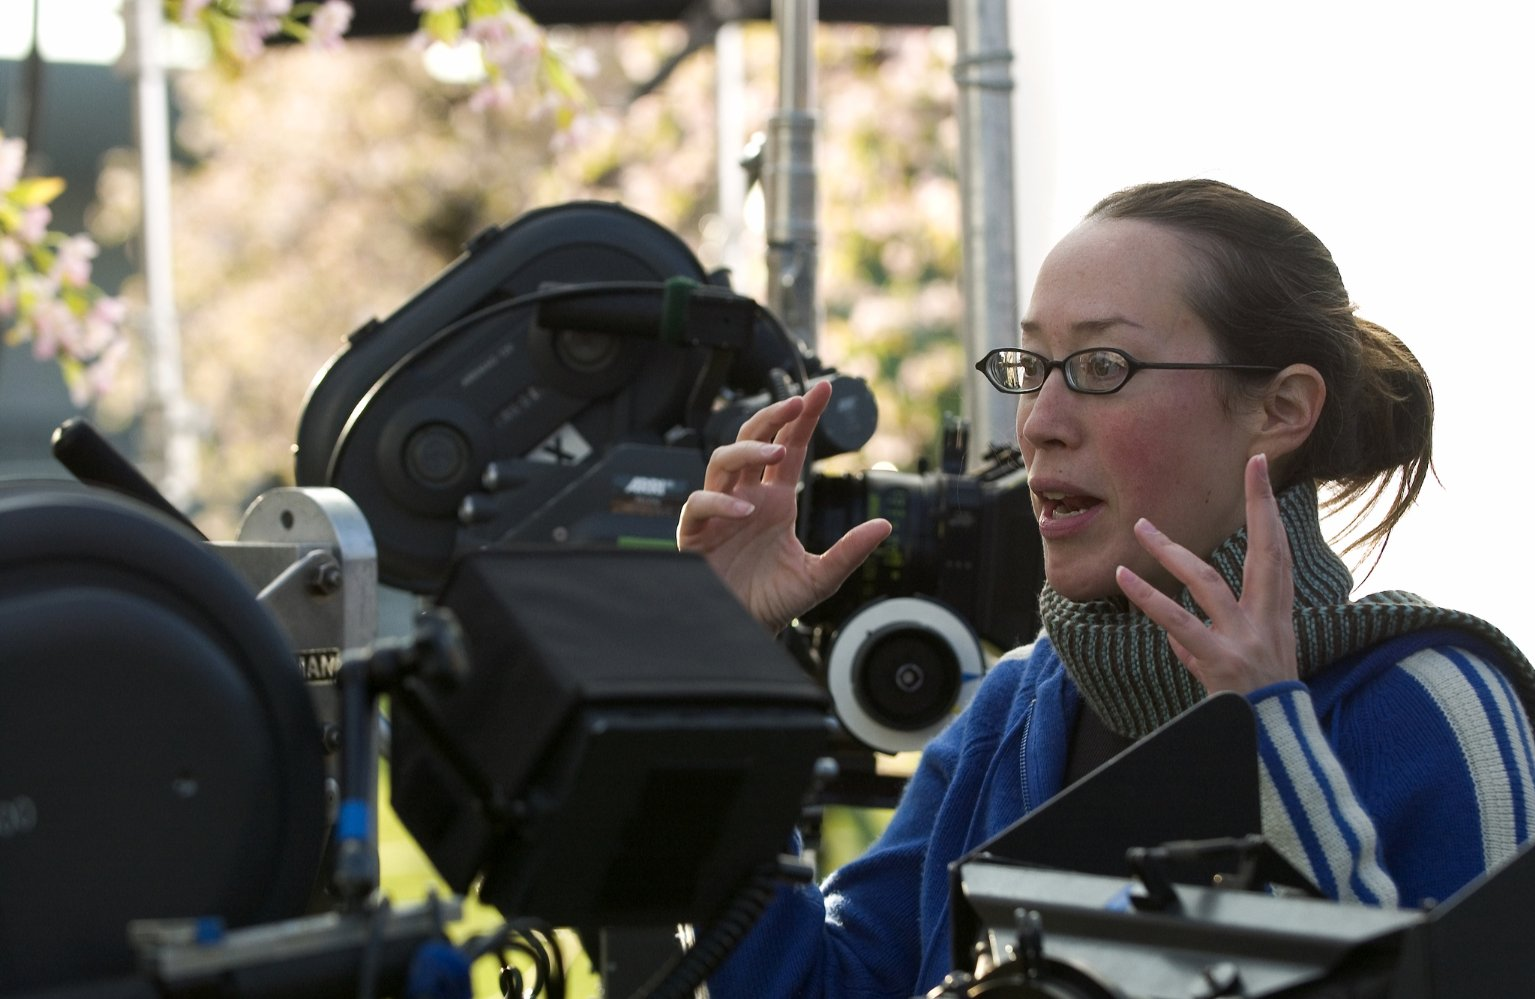 """Karyn Kusama wrote and directed her first feature film, """"Girlfight"""", in 1999. The film won the Director's Prize and shared the Grand Jury Prize at the 2000 Sundance Film Festival. In 2004, Karyn directed the science fiction love story """"Aeon Flux"""" for Paramount Pictures. Her third  feature was the comedy-horror film """"Jennifer's Body"""", written by Diablo Cody, and released by Twentieth Century Fox. Karyn's latest feature, """"The Invitation"""", is a psychological suspense film that won the Grand Prize at the Sitges Film Festival, among other awards. """"The Invitation"""" was released in April 2016 by Drafthouse Films. She recently directed a short film entitled """"Her Only Living Son"""", part of the upcoming Magnolia release """"XX"""". """"XX"""", a four-film anthology of horror shorts directed by women, will be released in the spring of 2017. She also directs for television, working on such shows as AMC's """"Halt and Catch Fire"""", Amazon's """"The Man in the High Castle"""", and Showtime's """"Billions""""."""